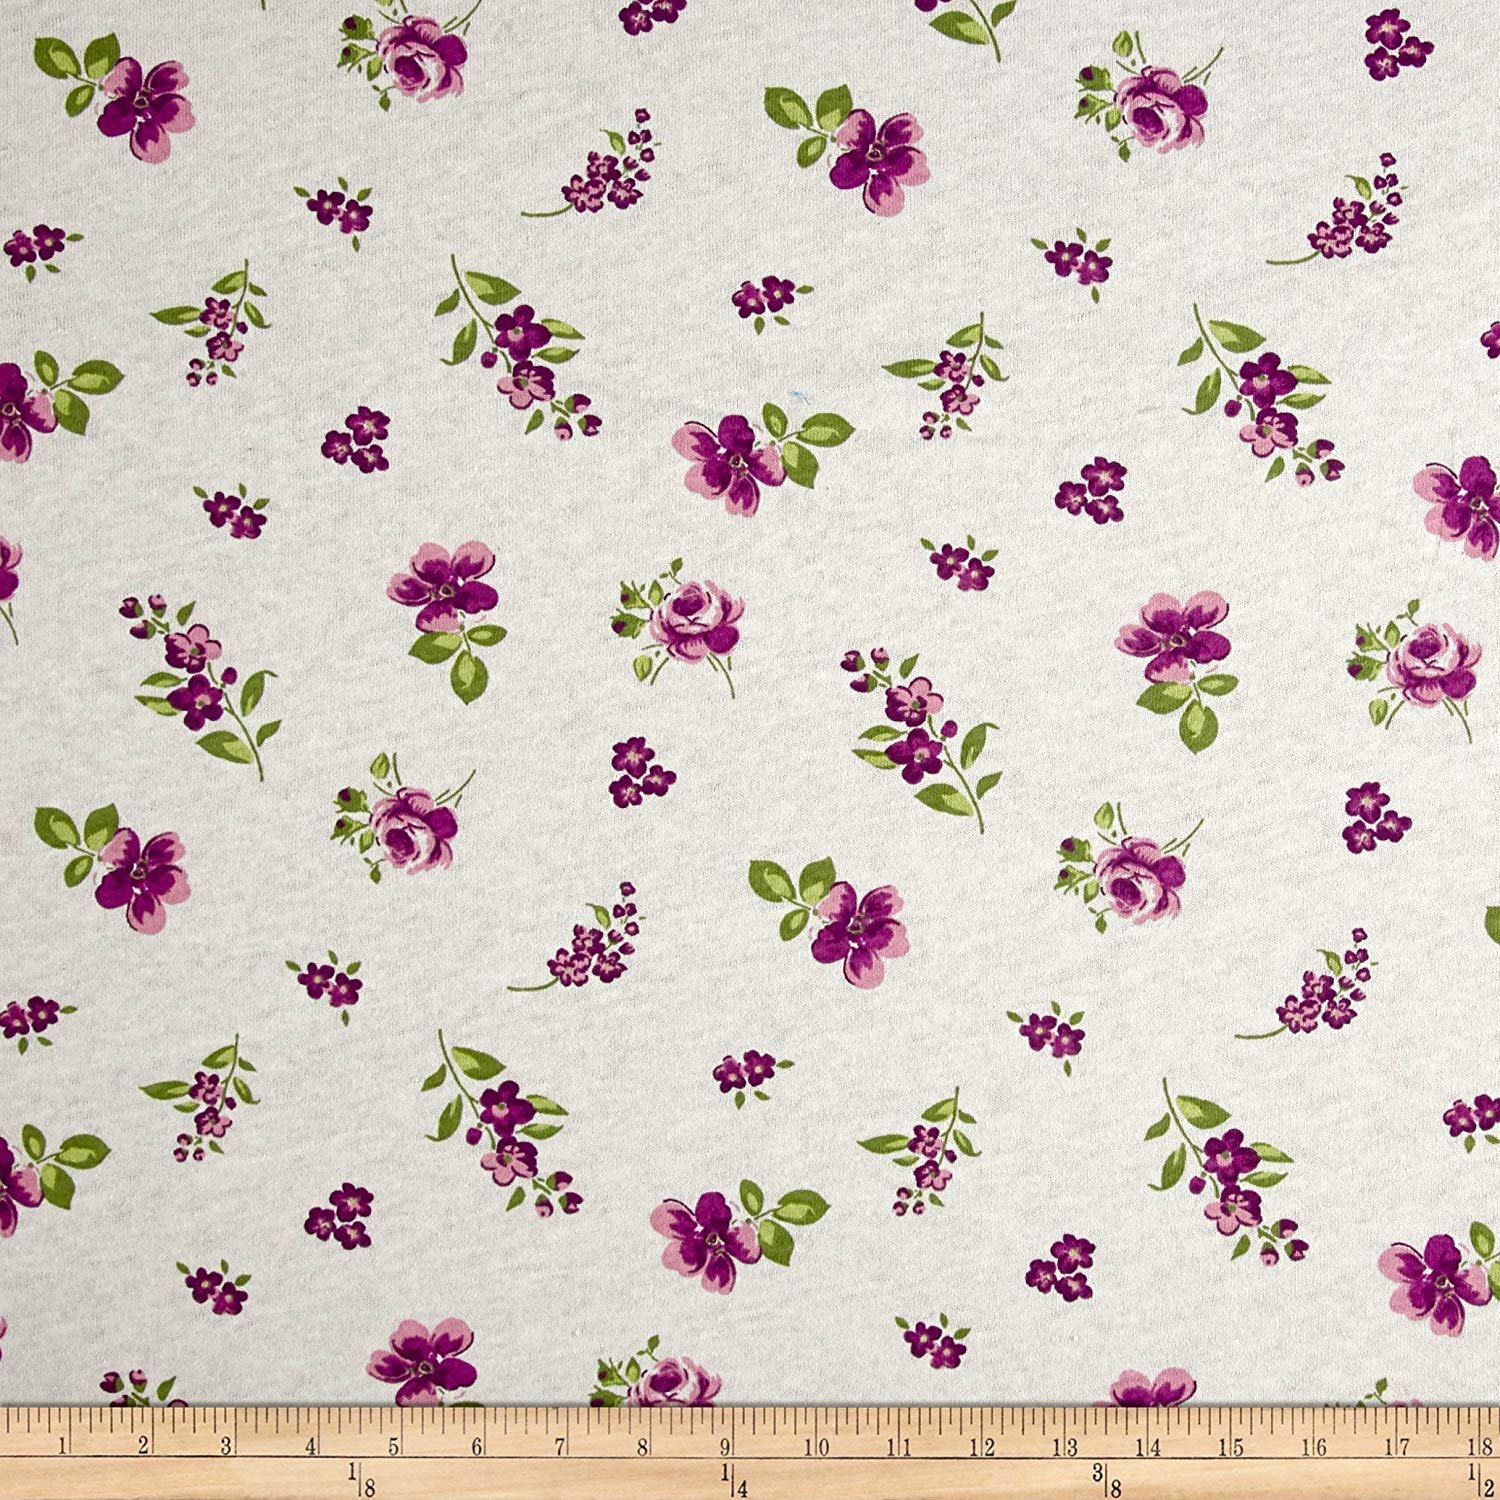 f89eeac37f3 Get Quotations · Fabric Merchants 100% Cotton Jersey Knit Floral, Plum/White